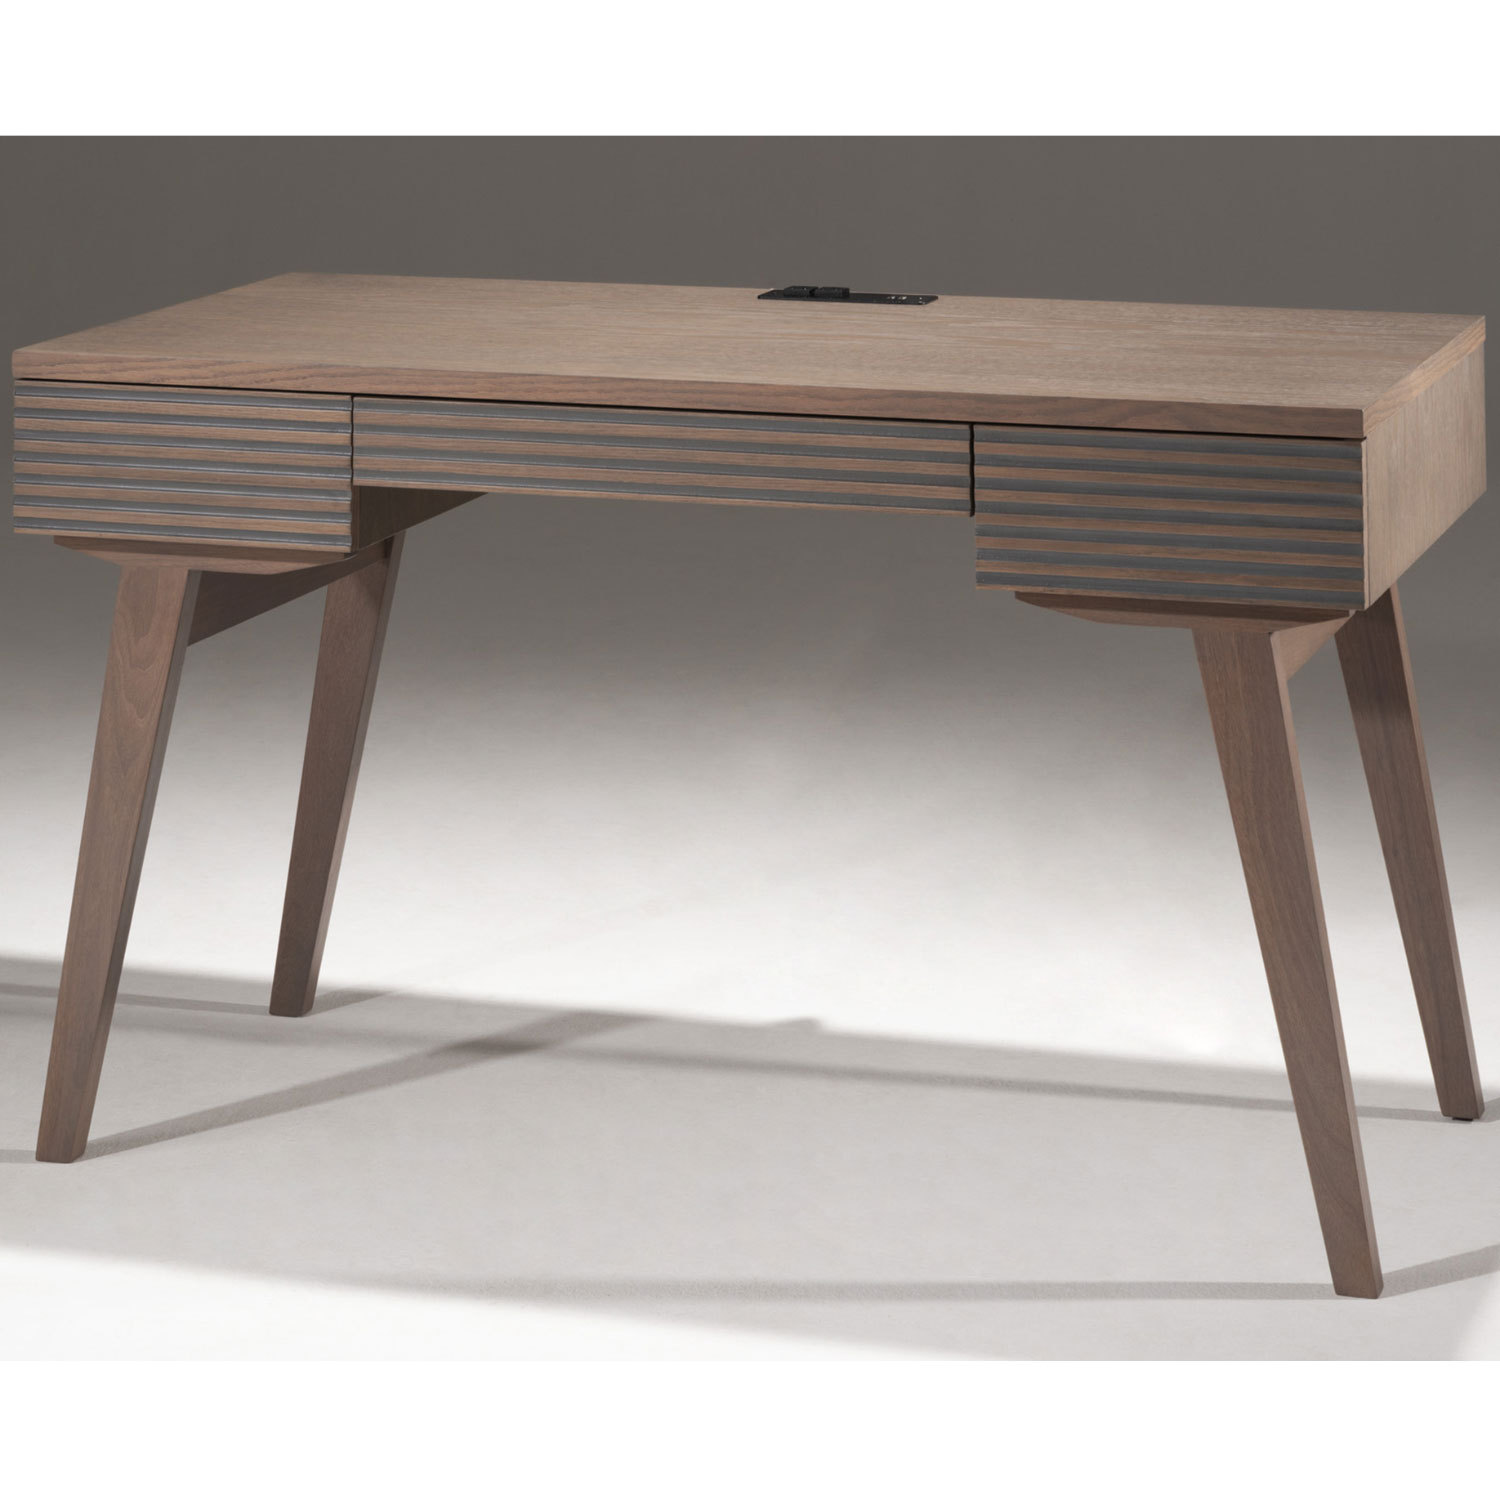 Image of: Furnitech Tango Dk48cg 48 Mid Century Modern Writing Desk In Grey Brazilian Cherry